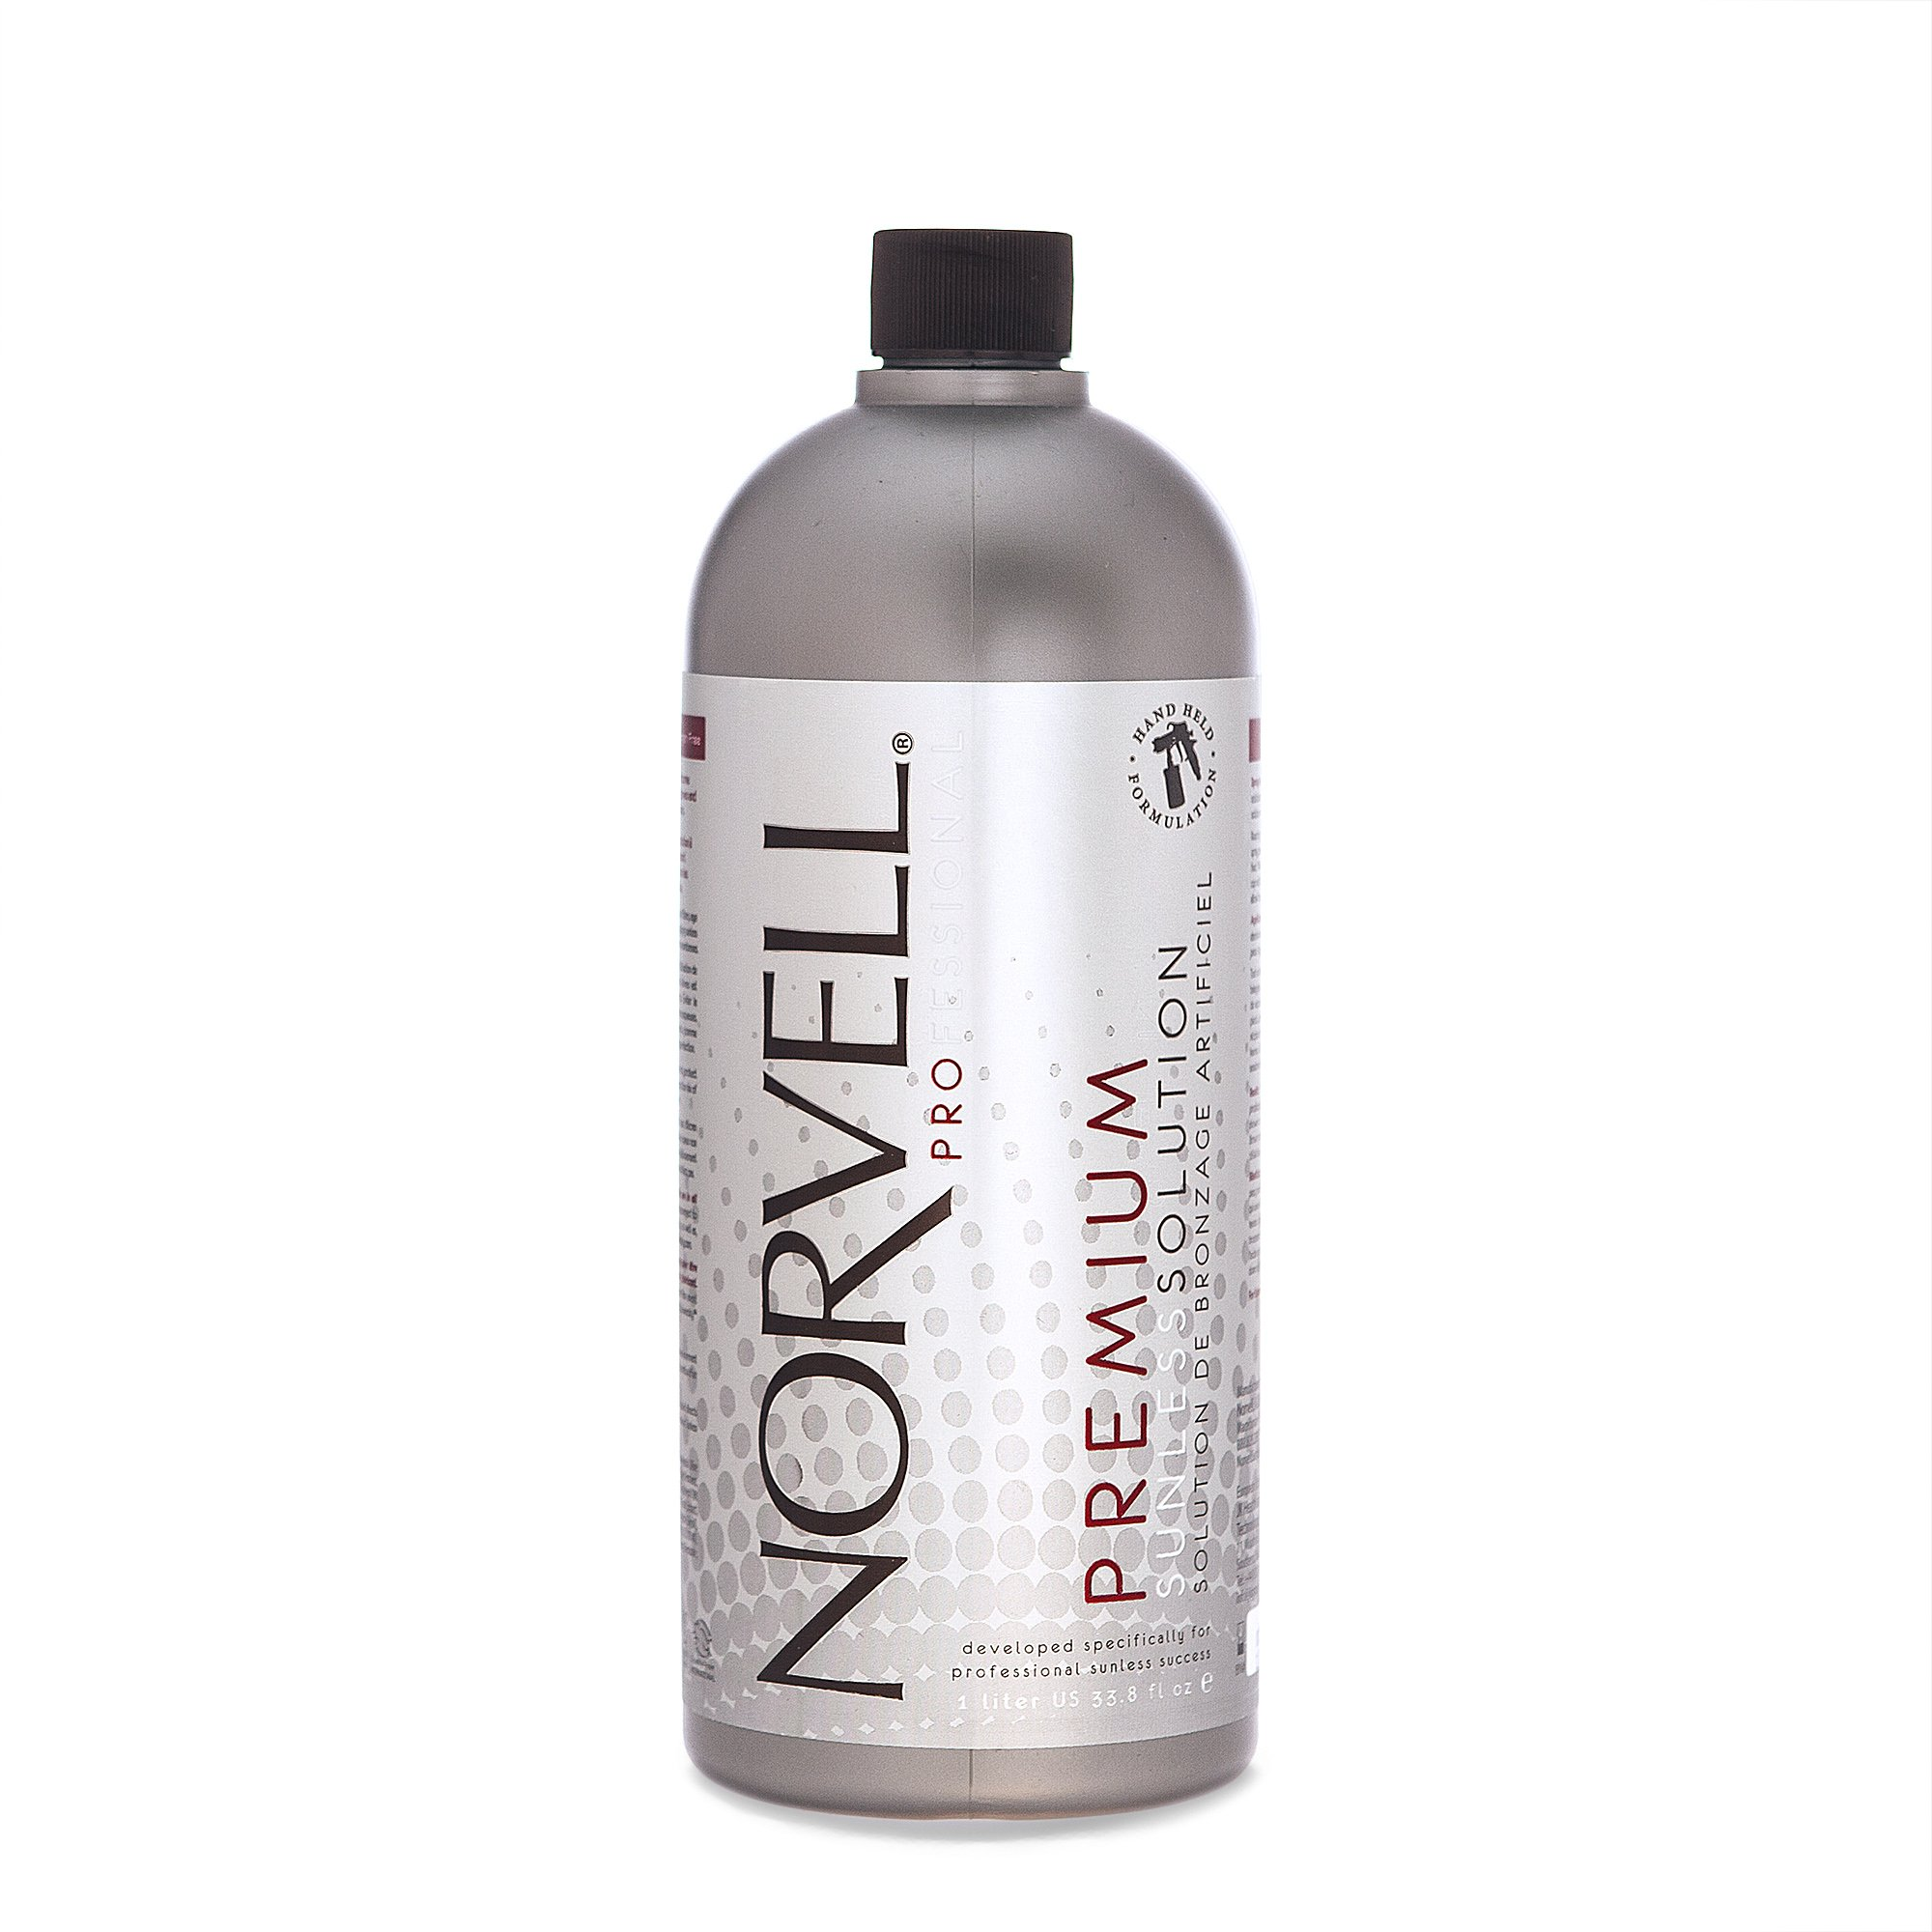 Norvell Premium Sunless Tanning Solution - Double Dark, 1 Liter by Norvell